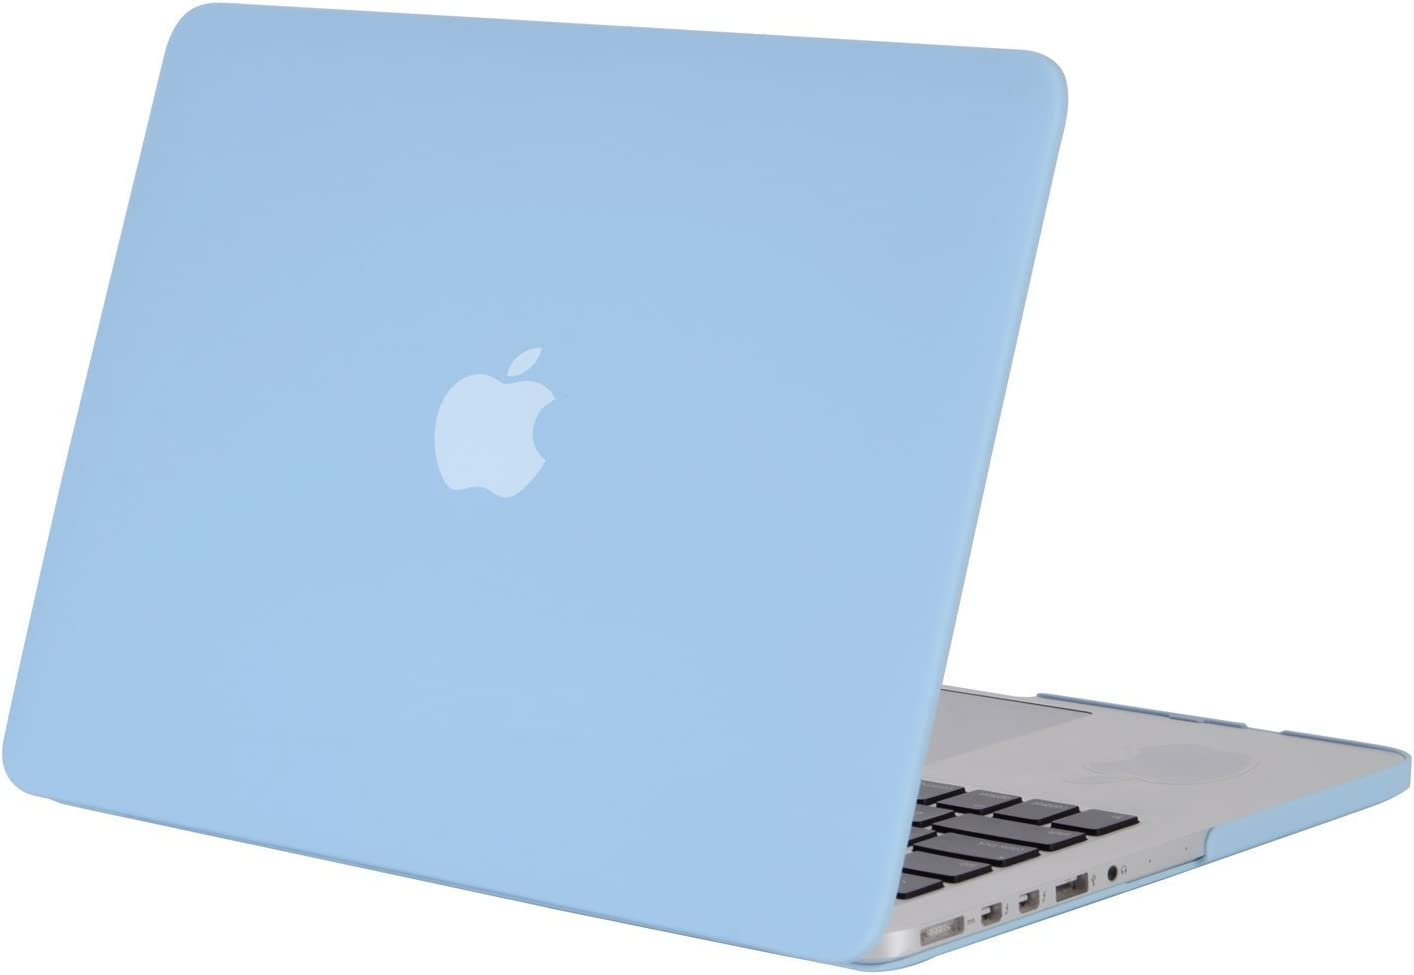 MOSISO Plastic Hard Shell Case Cover Only Compatible with Older Version MacBook Pro Retina 13 Inch (Models: A1502 & A1425) (Release 2015 - end 2012), Airy Blue